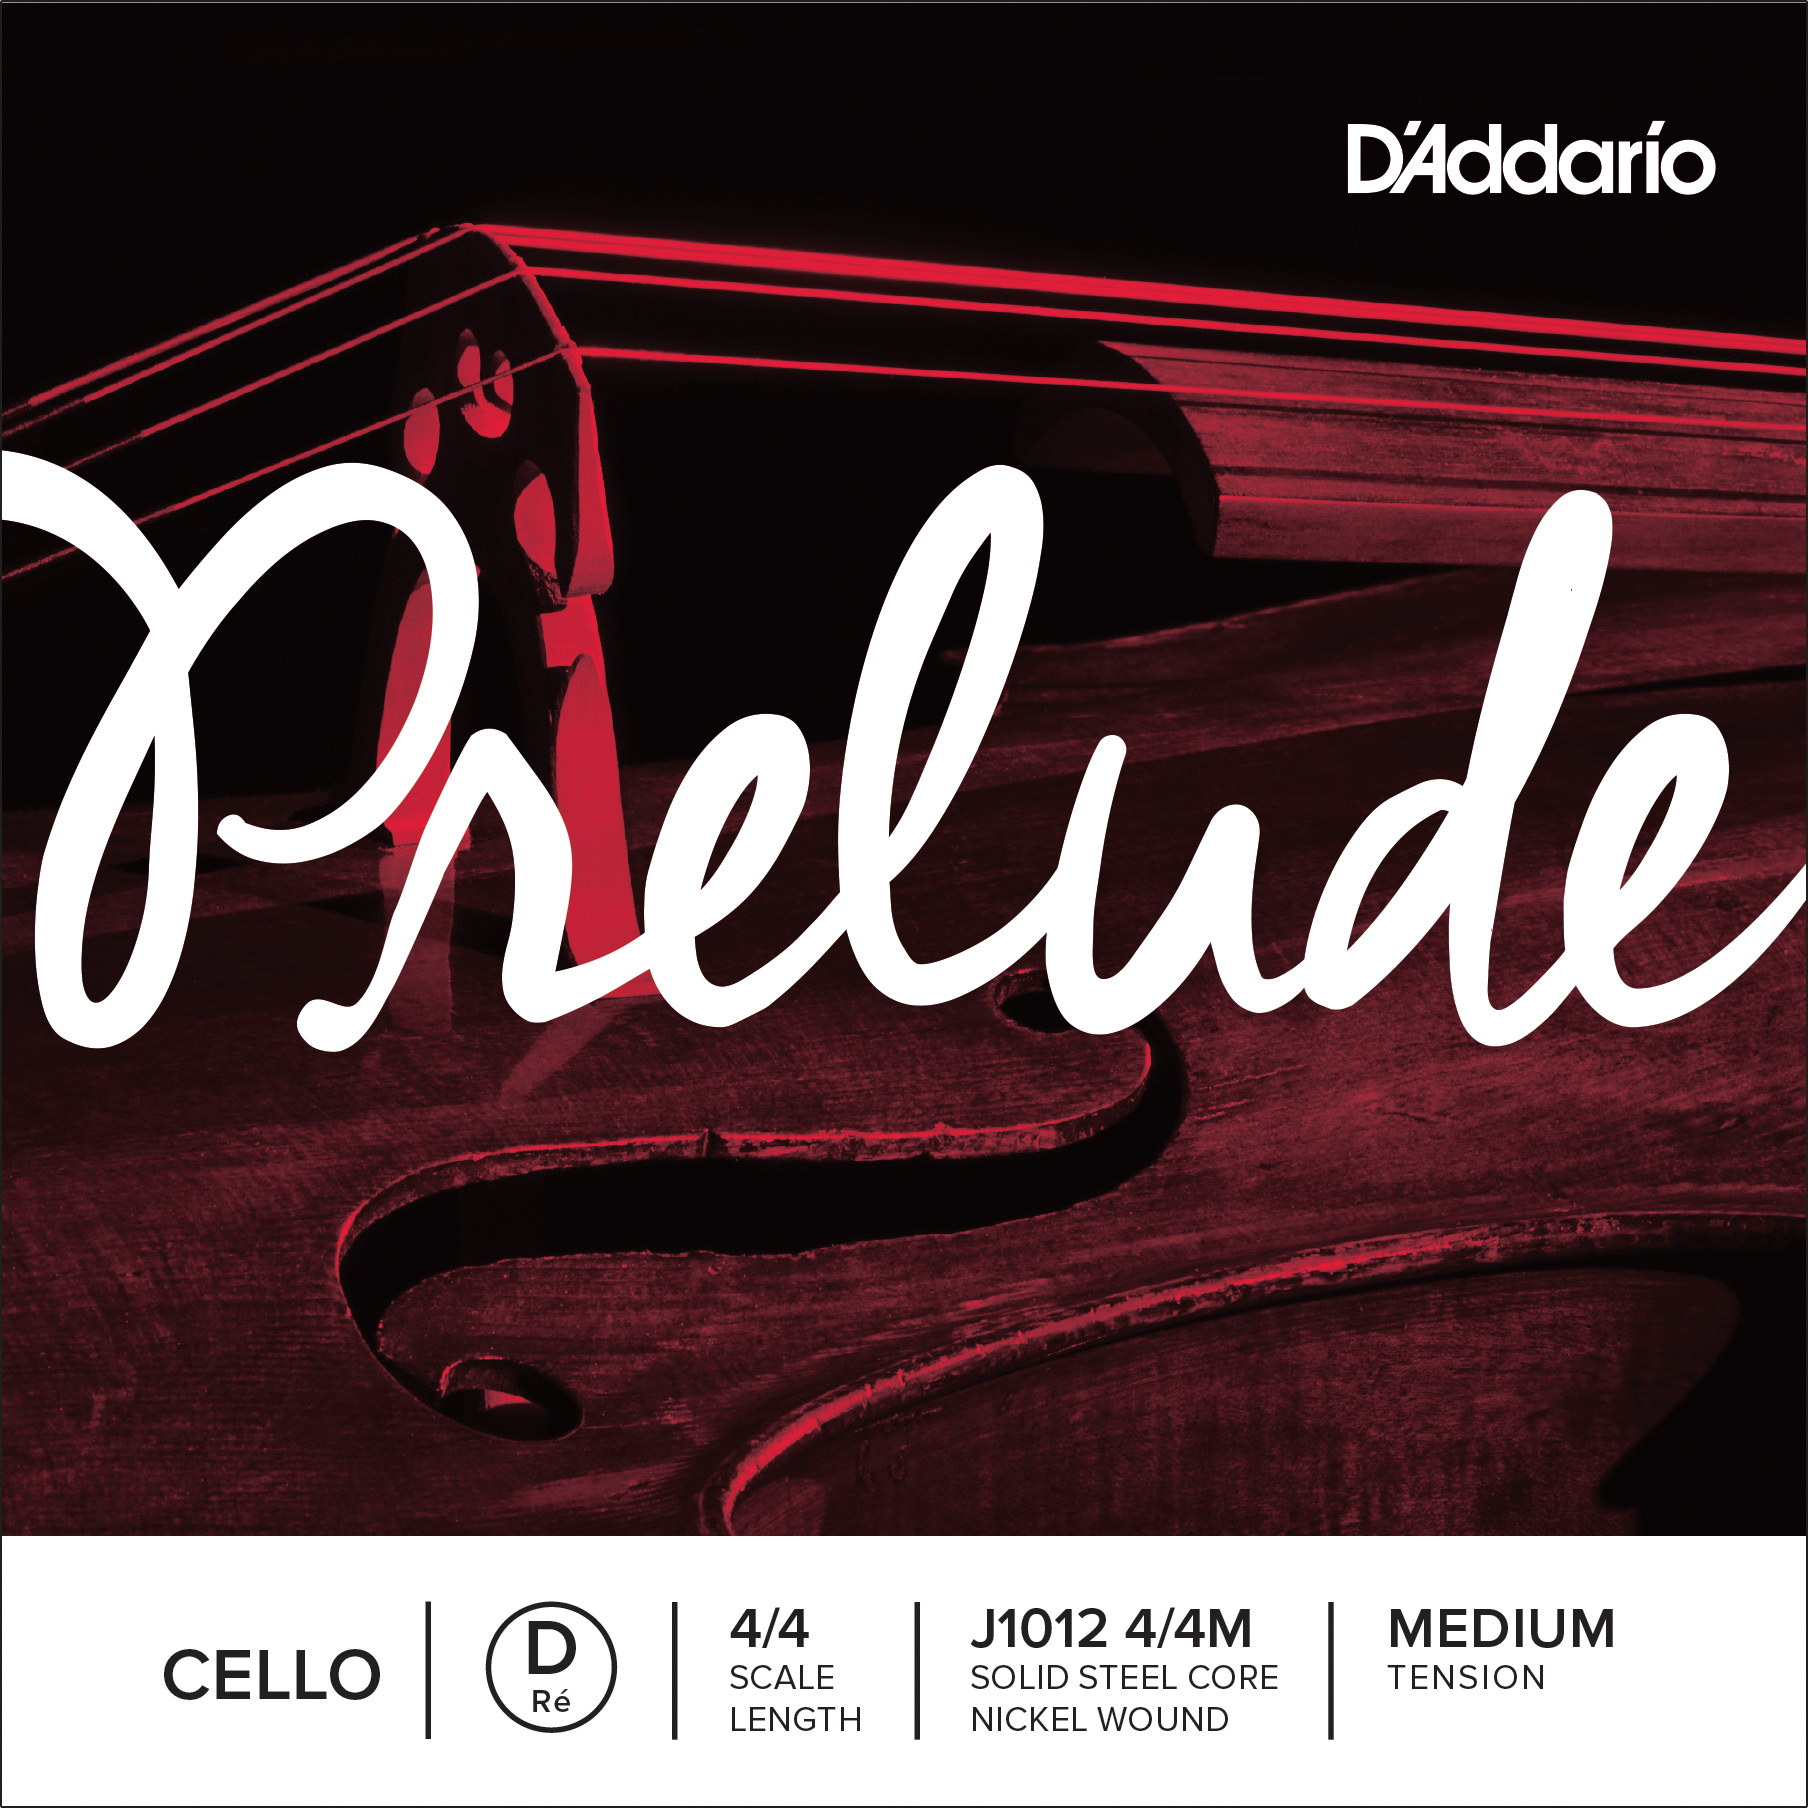 D'Addario Prelude Cello Single D String 4/4 Scale Medium Tension